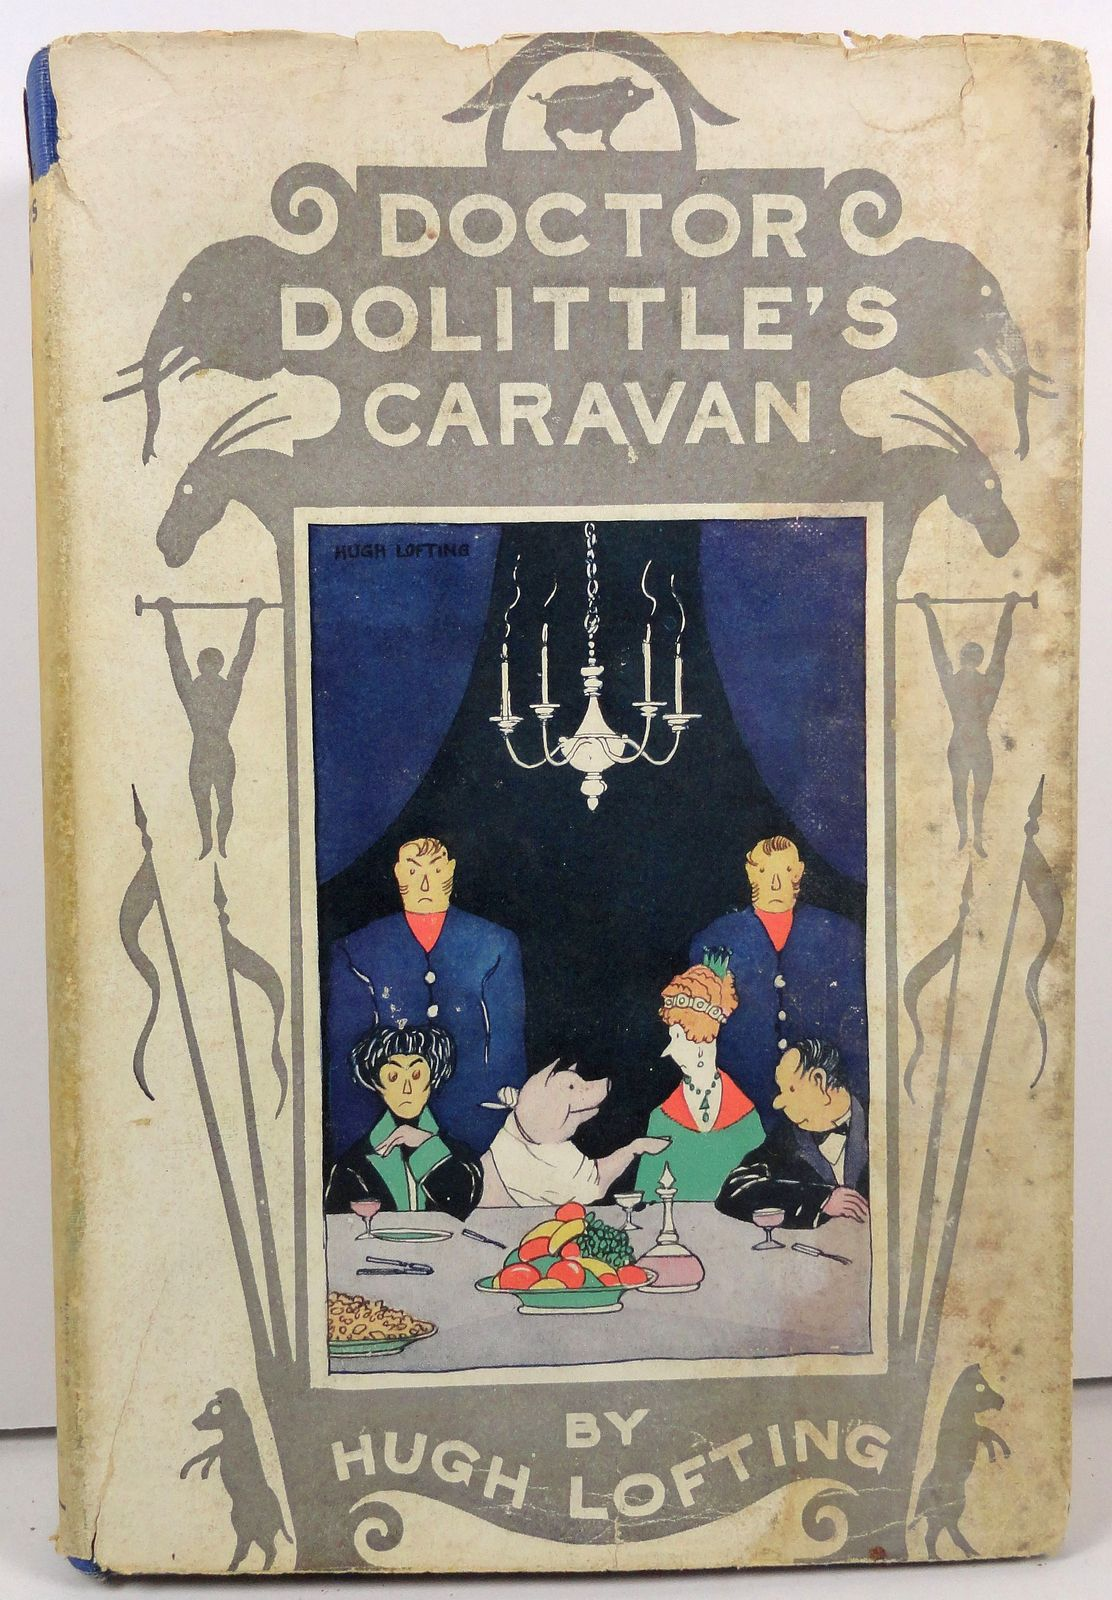 Primary image for Doctor Dolittle's Caravan by Hugh Lofting 1927 HC/DJ